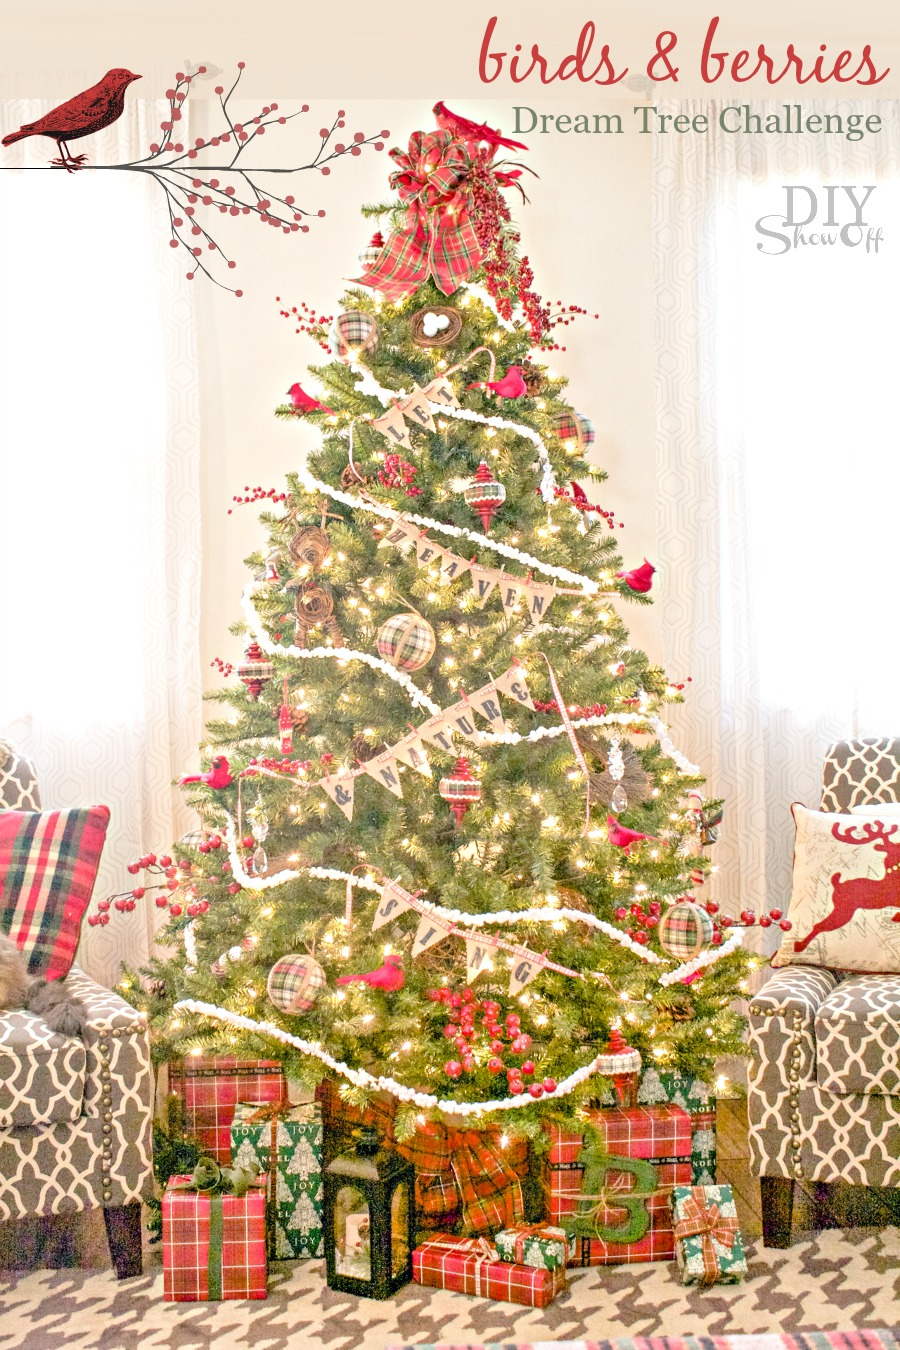 the michaels dream tree challenge mission is to bring you some holiday inspiration in preparation for seasonal decorating its not too early to start - Michaels Christmas Decorations